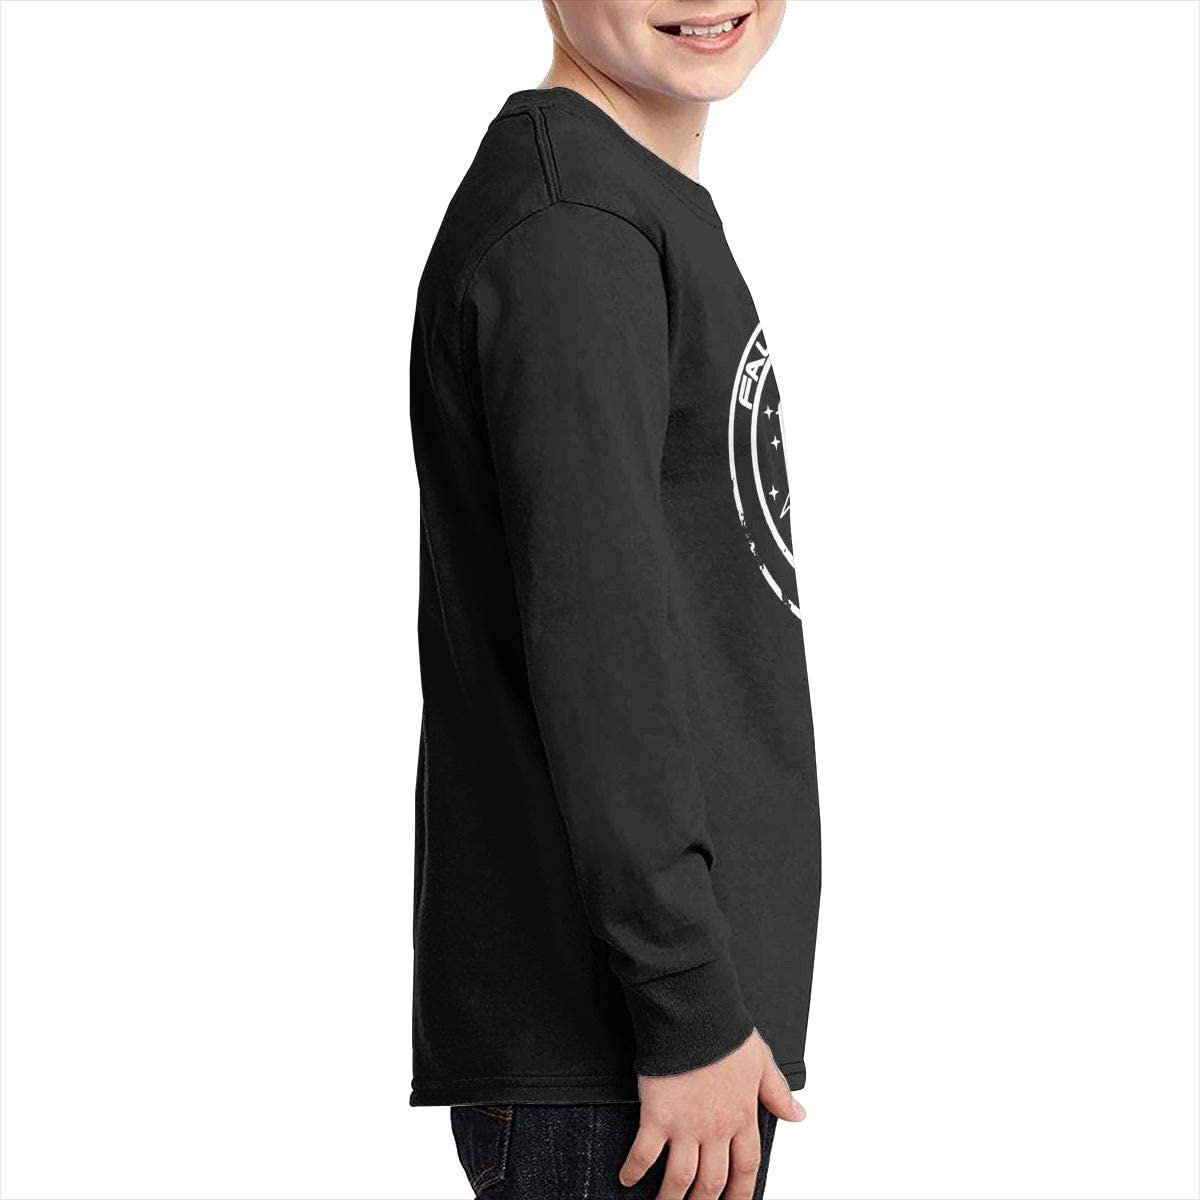 Onlybabycare Falcon Heavy Spacex Teen Boy Girl Wicking Pullover Sweatshirt Active Shirt